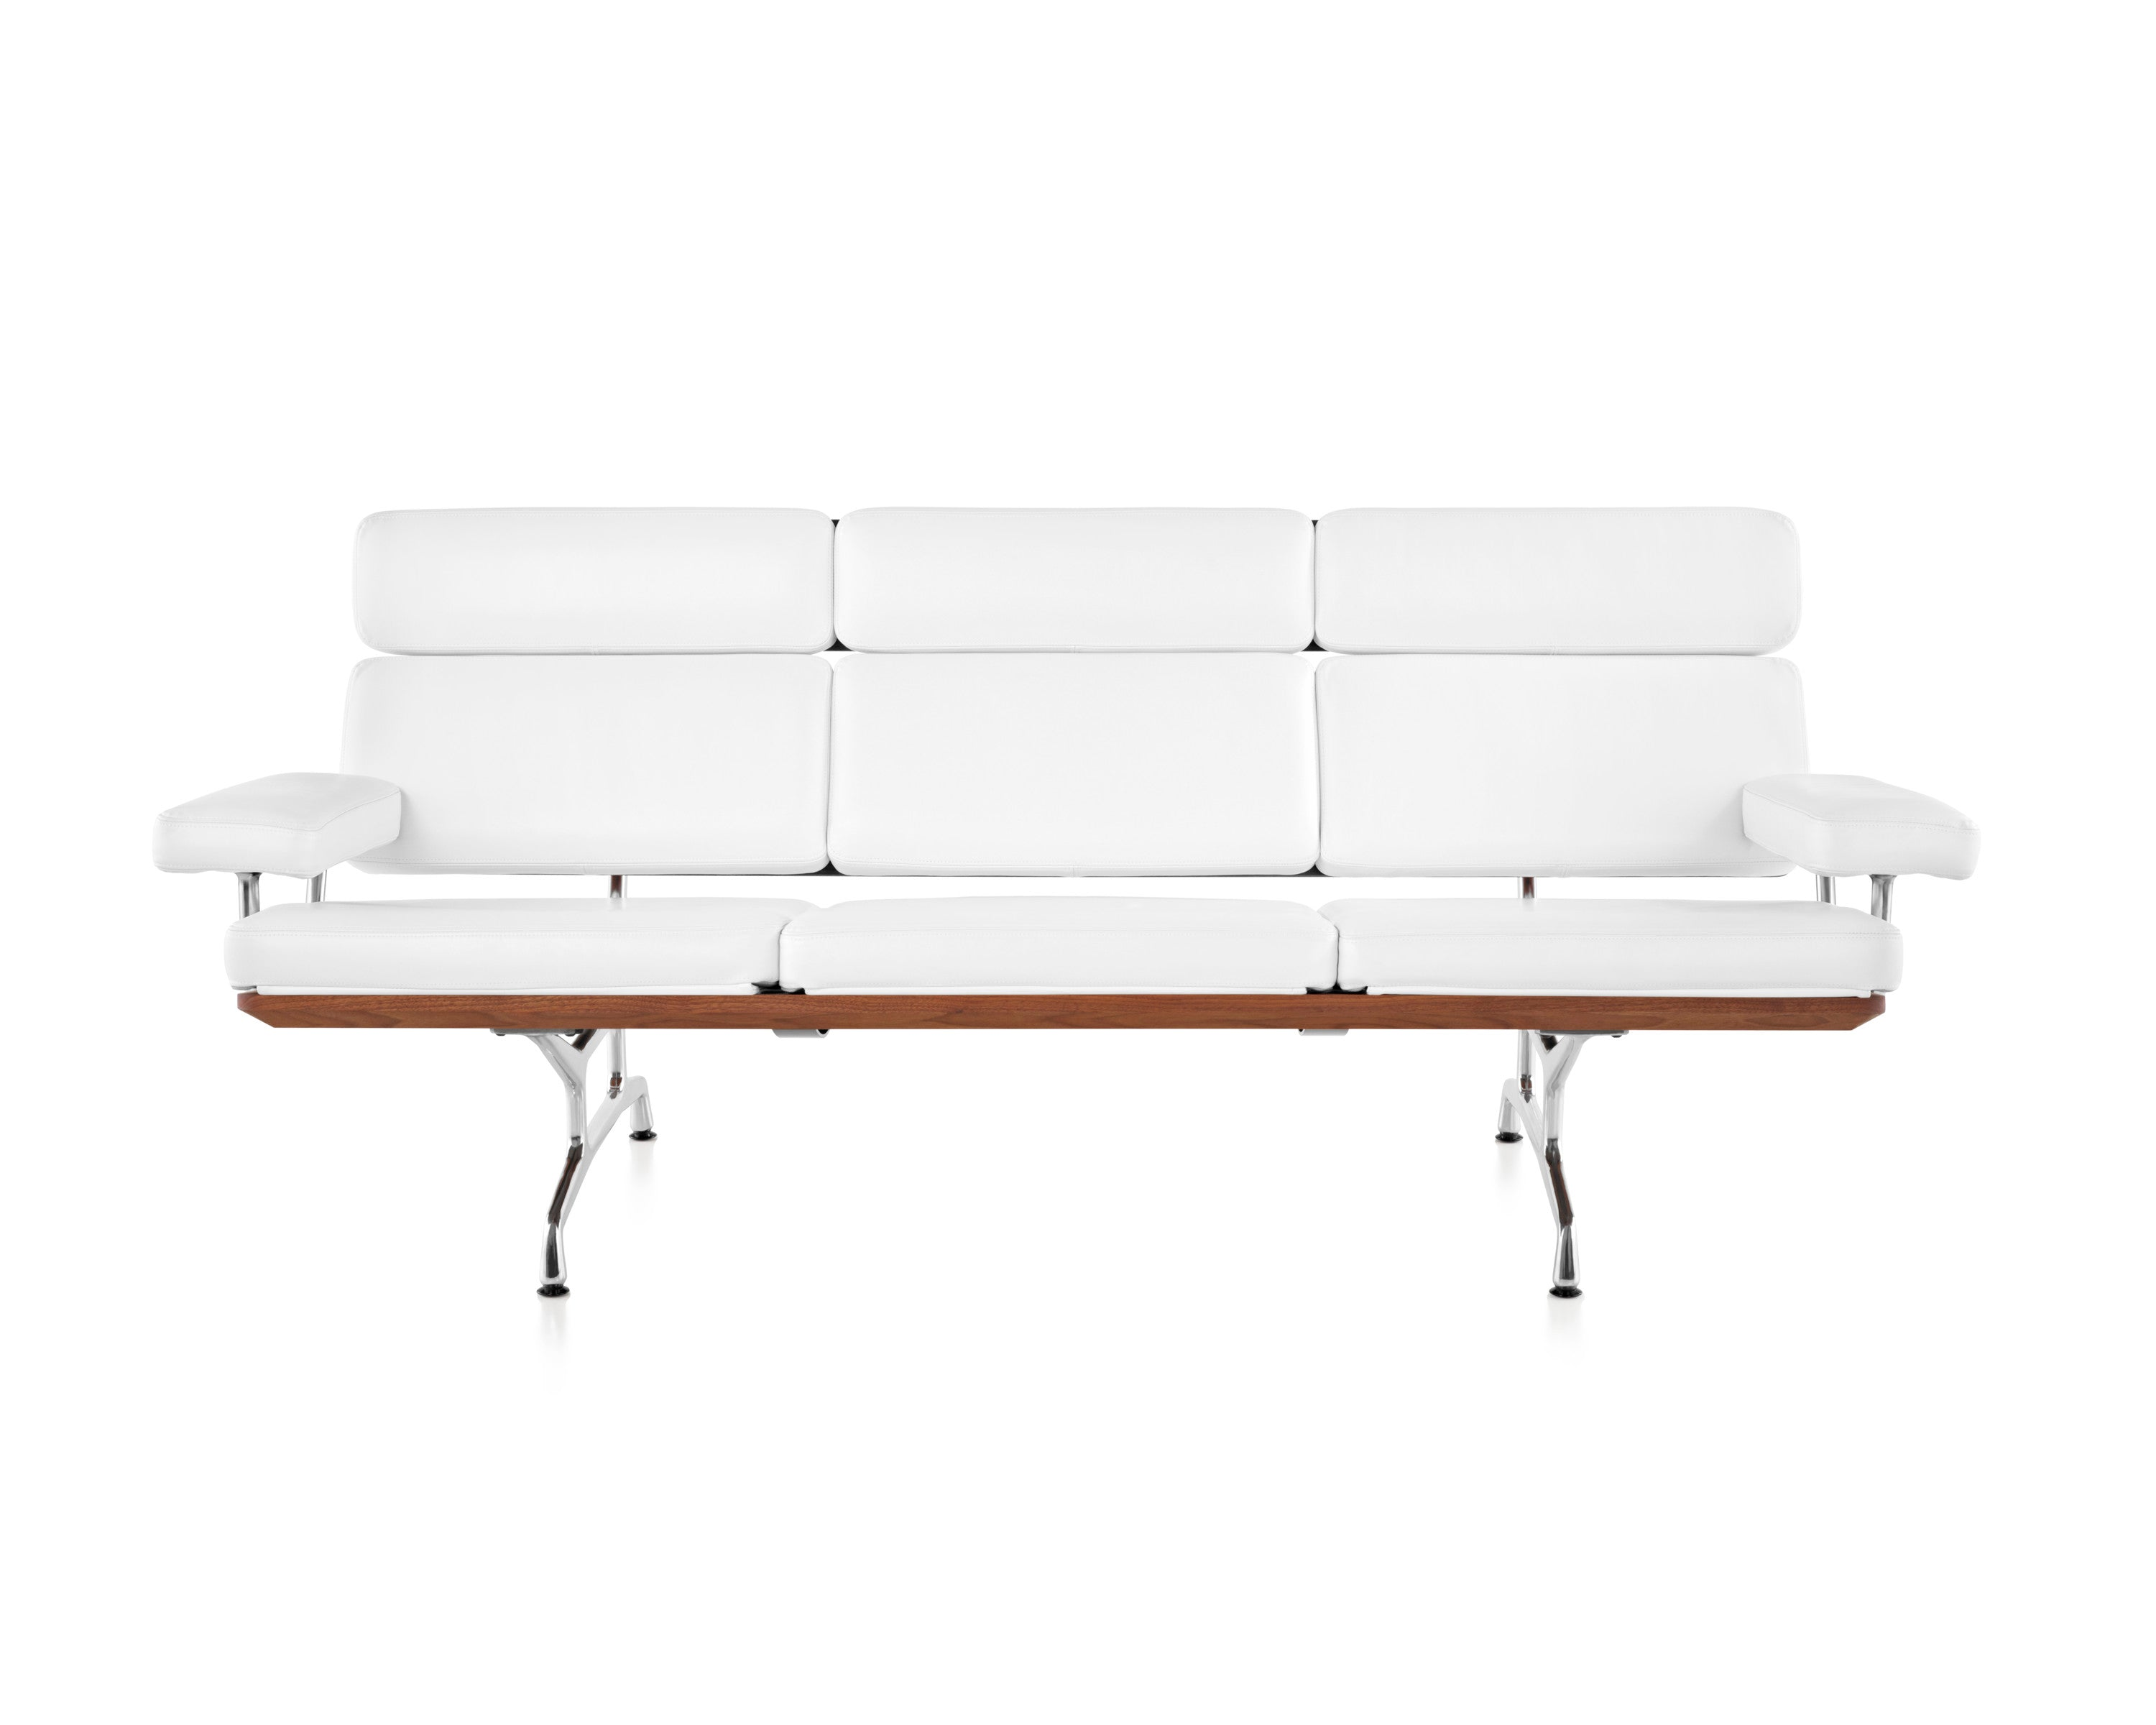 Stupendous Eames Sofa Sofas And Sectionals By Herman Miller At The Home Forskolin Free Trial Chair Design Images Forskolin Free Trialorg